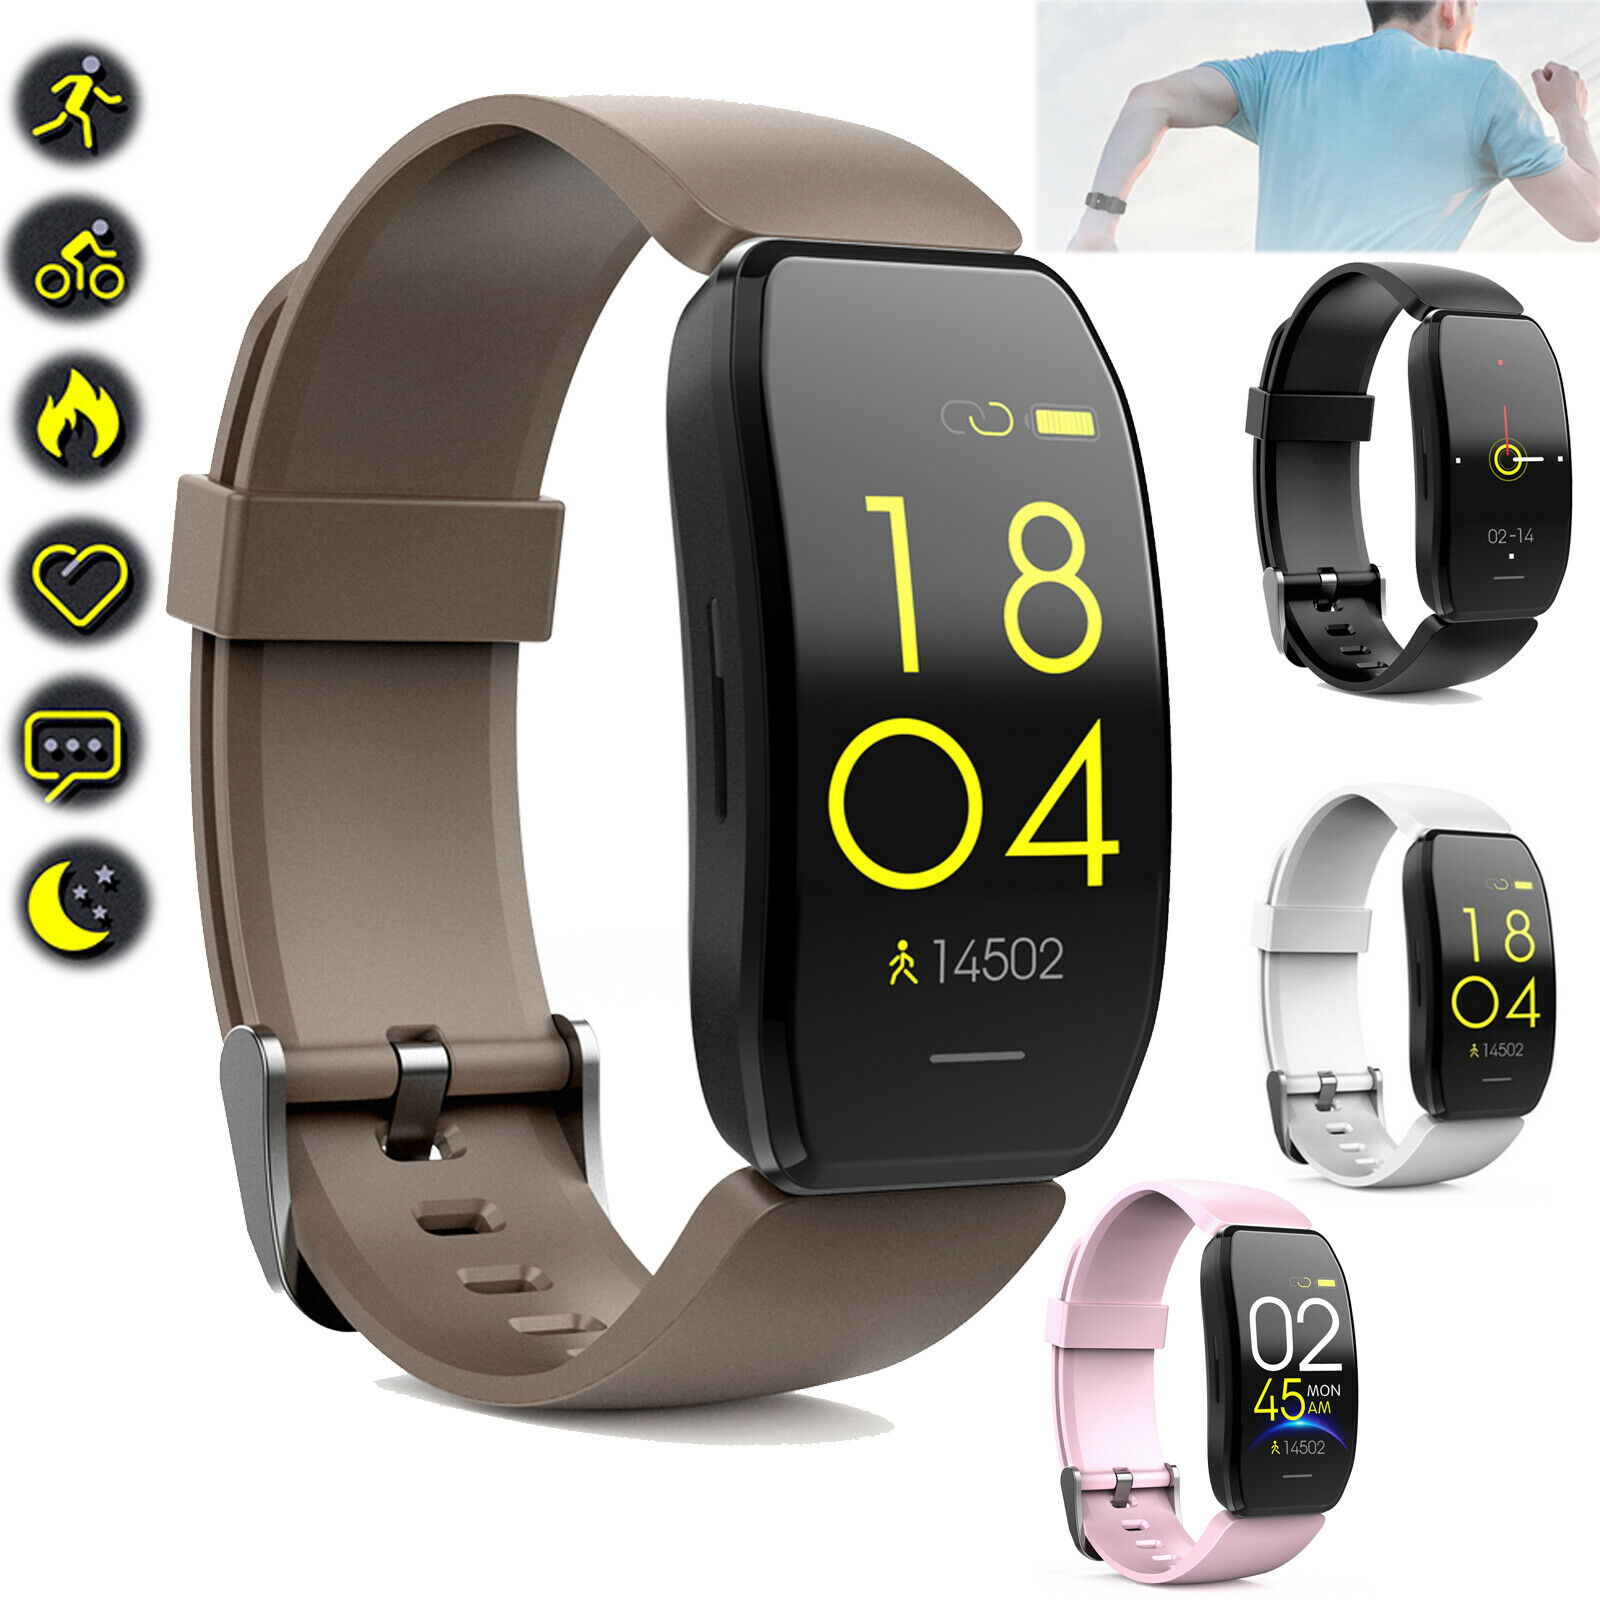 Fitness Tracker Smart Watch Health Heart Rate Monitor Wristwatch For Android IOS Featured fitness for health heart monitor rate smart tracker watch wristwatch